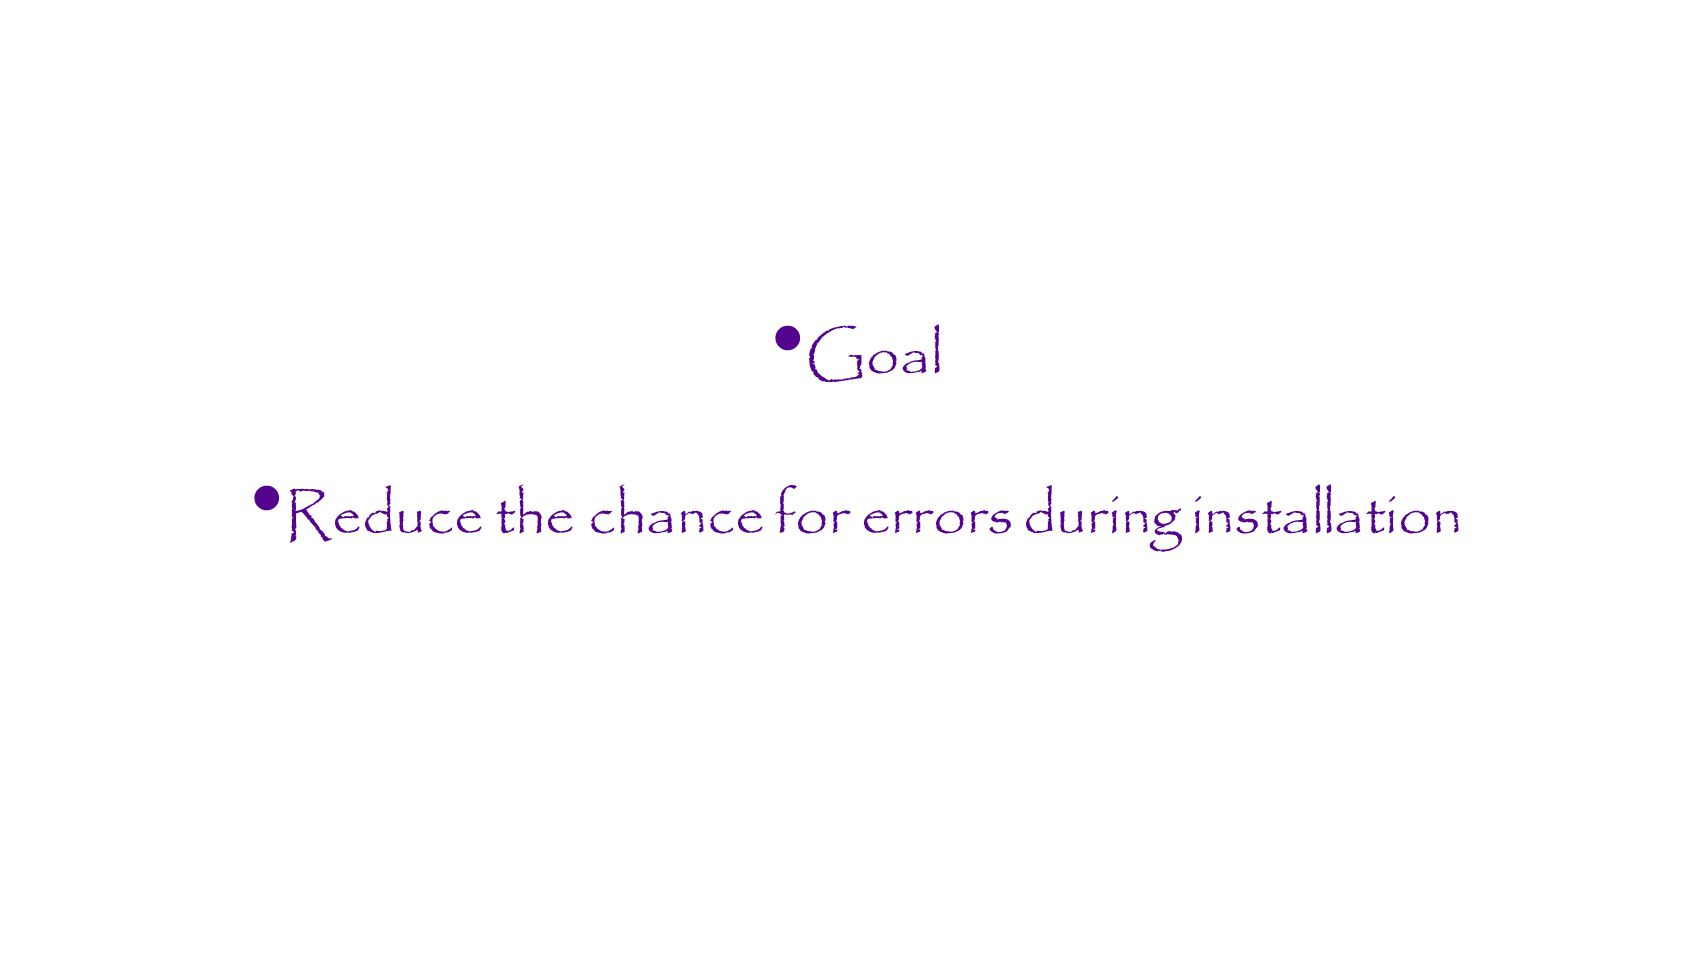 Reduce the chance for errors during installation